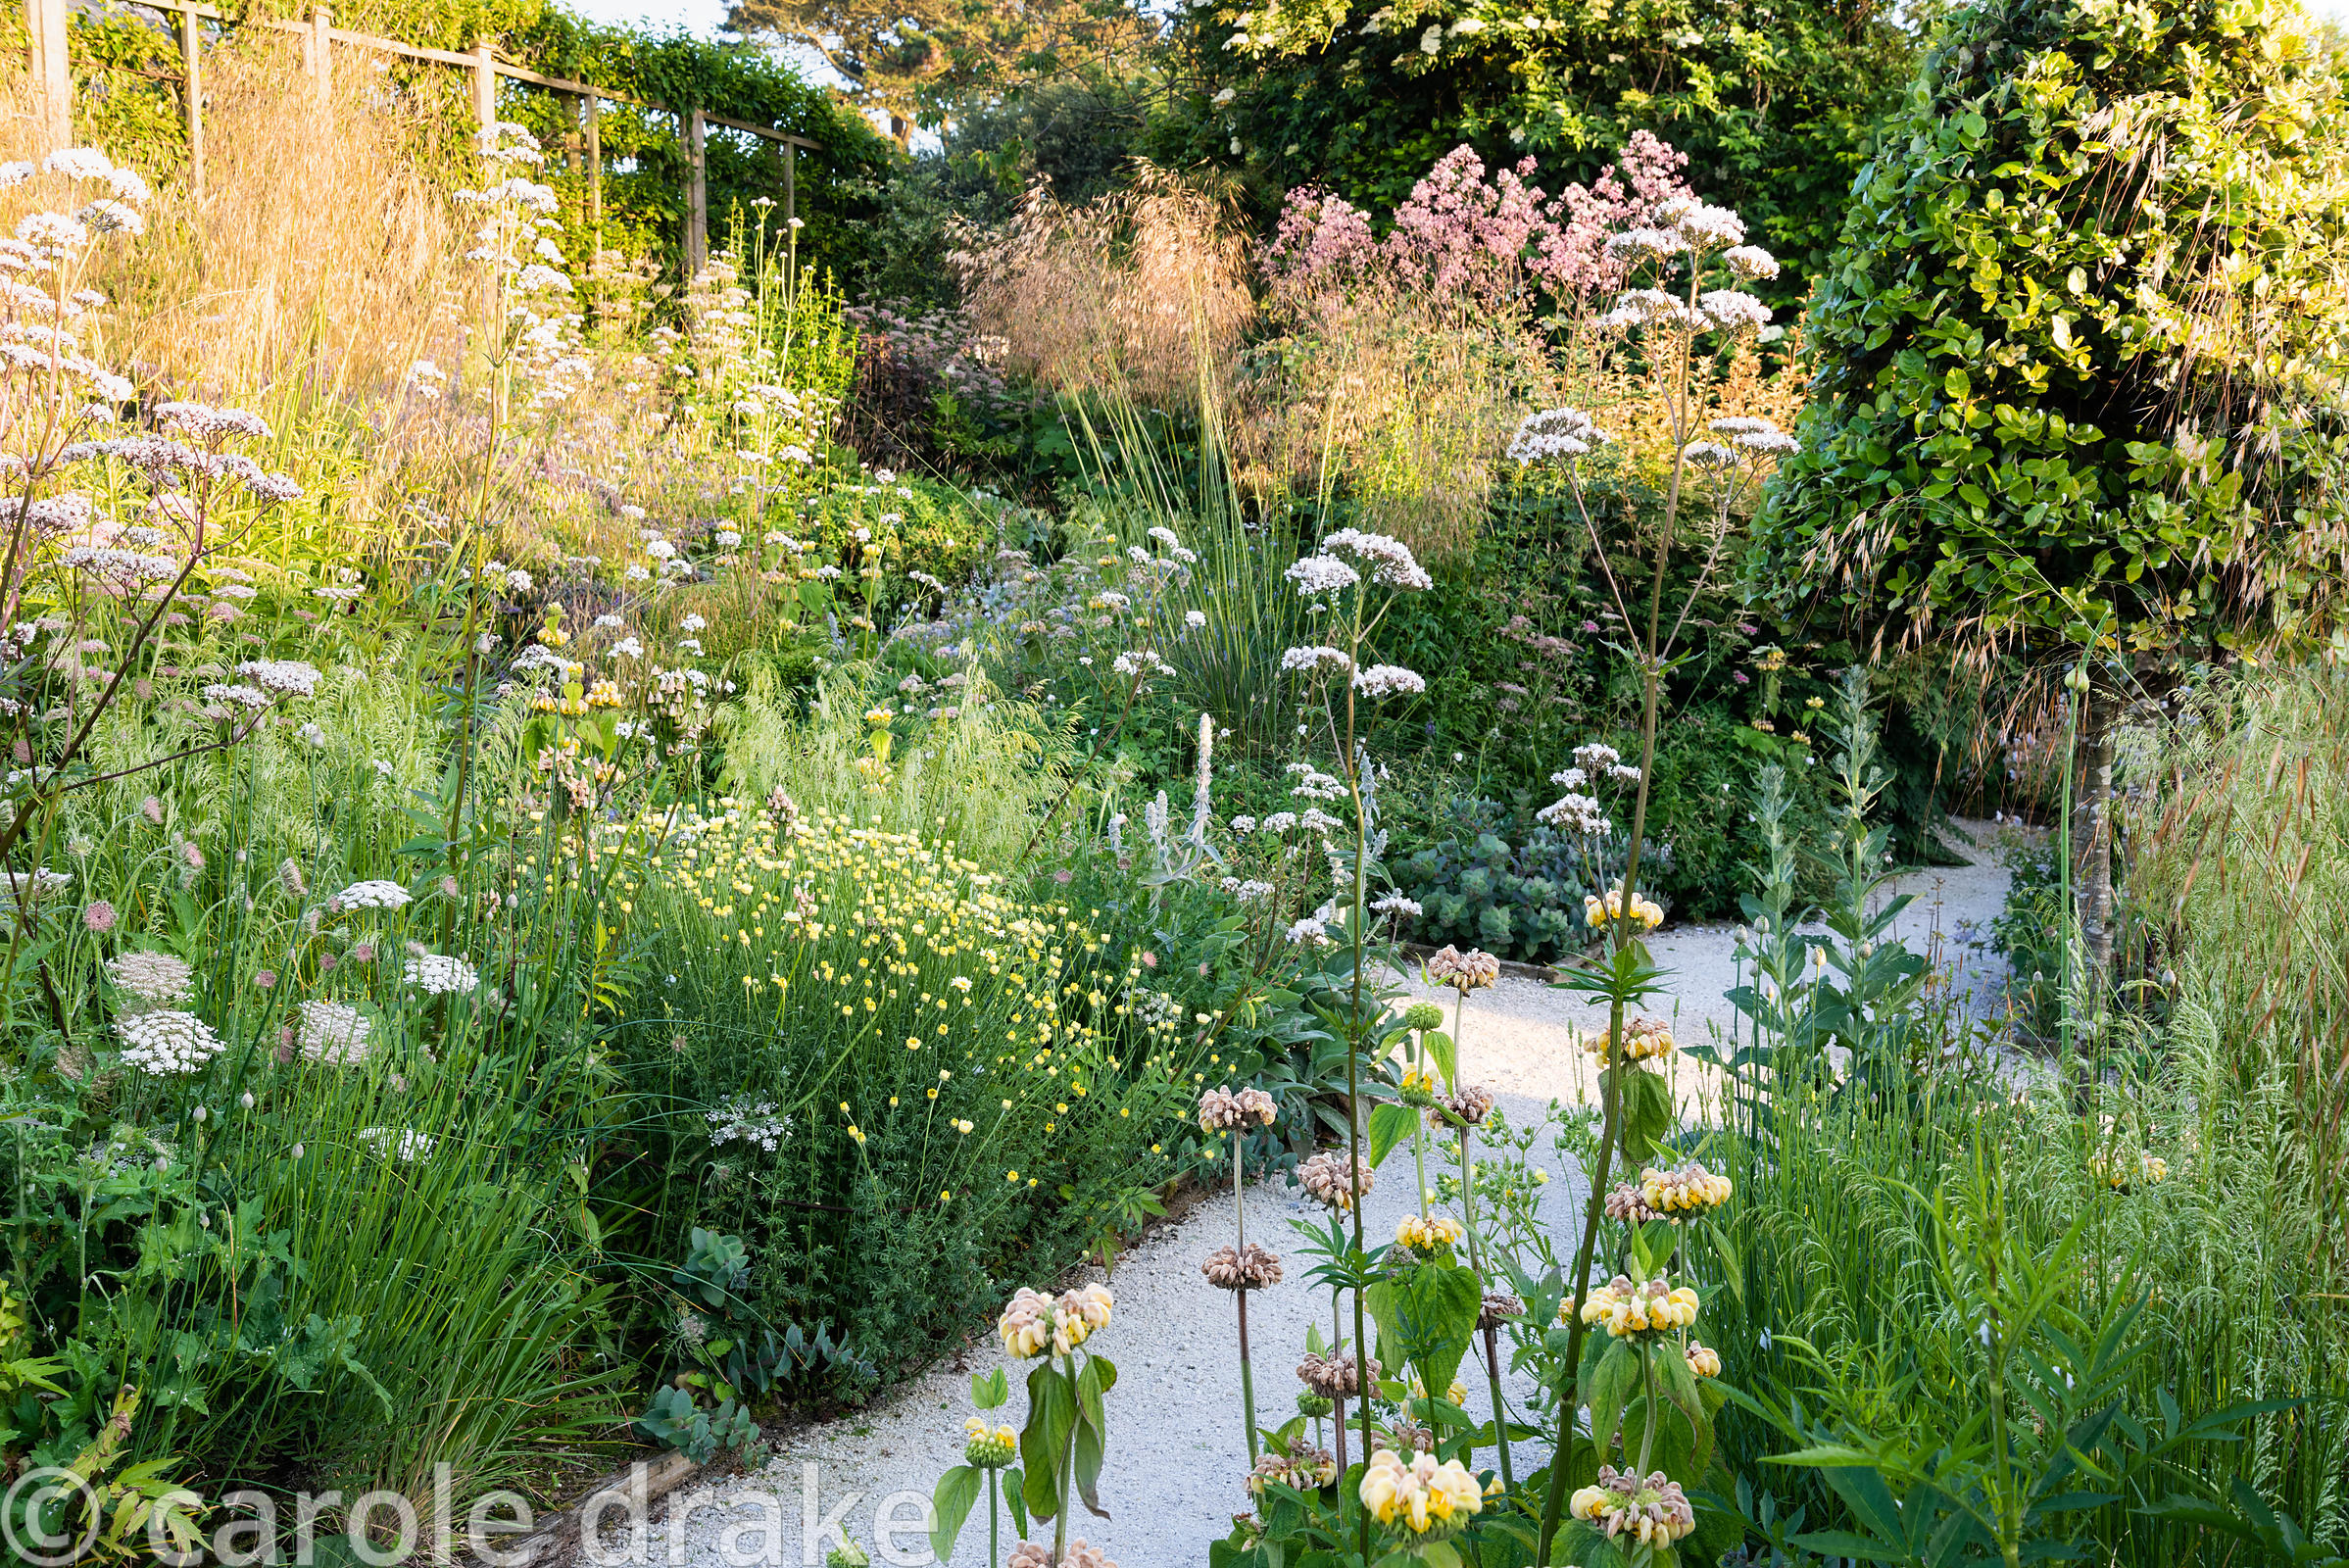 Densely planted borders including grasses Deschampsia caespitosa 'Goldschlier and Stipa gigantea, and herbaceous perennials P...